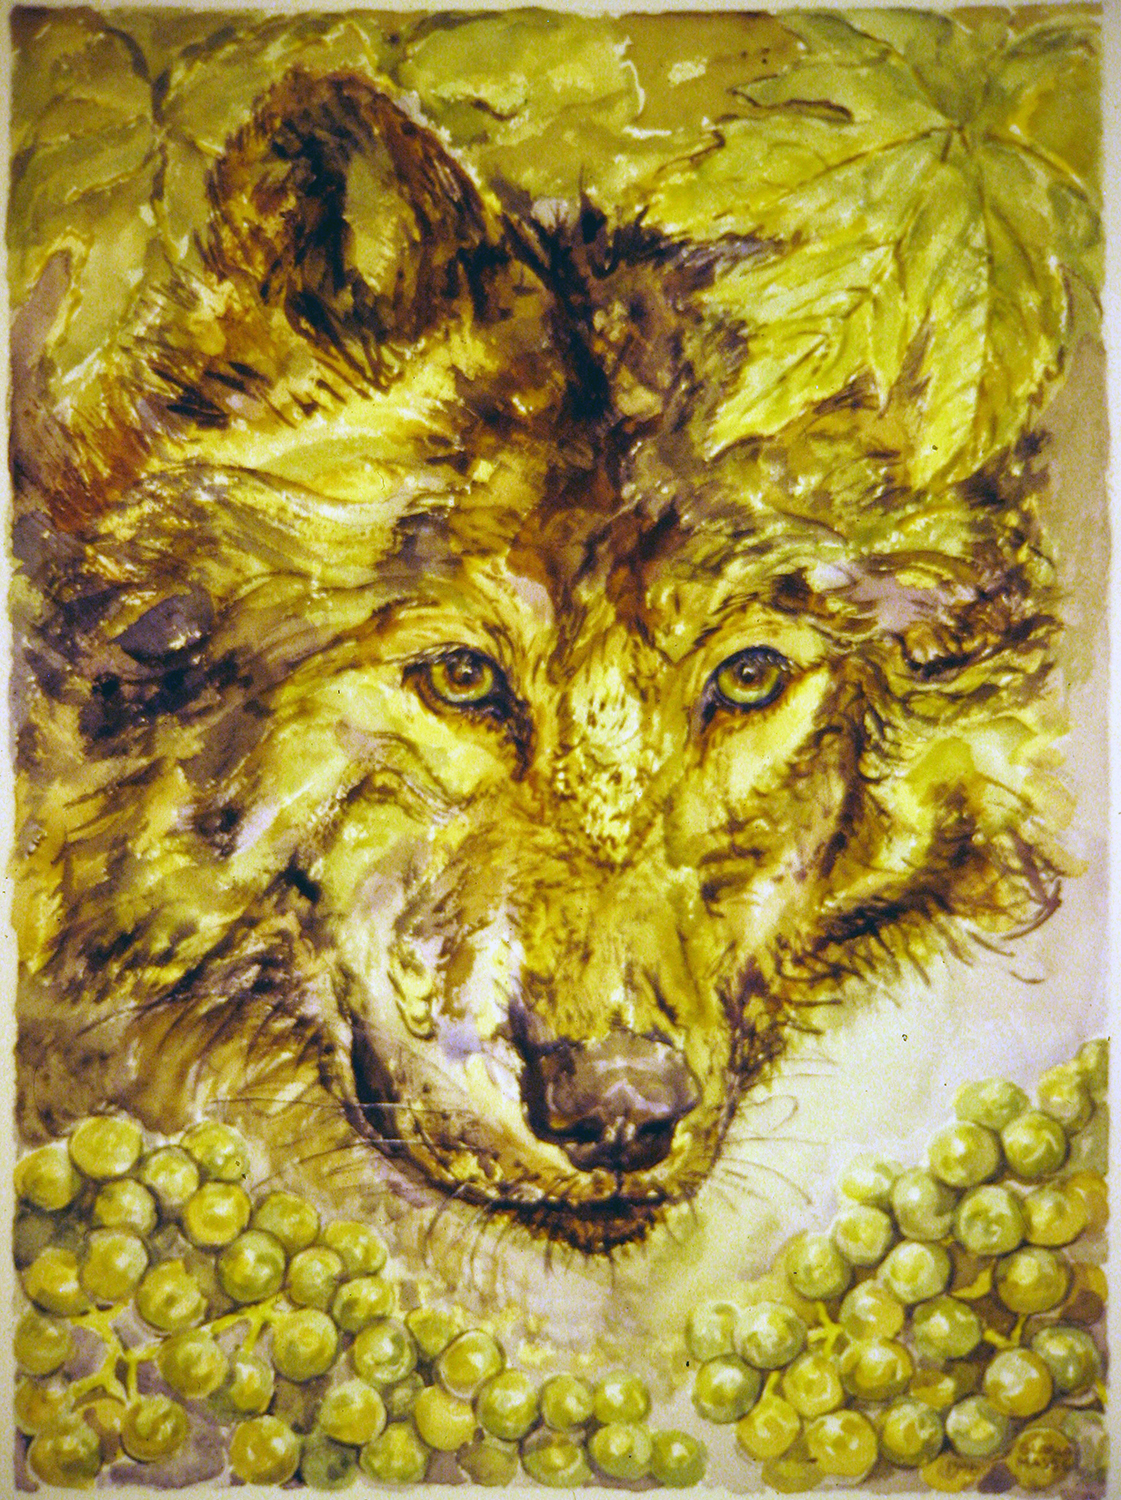 green grapes wolves of vineyard series 1996 watercolour 15x11